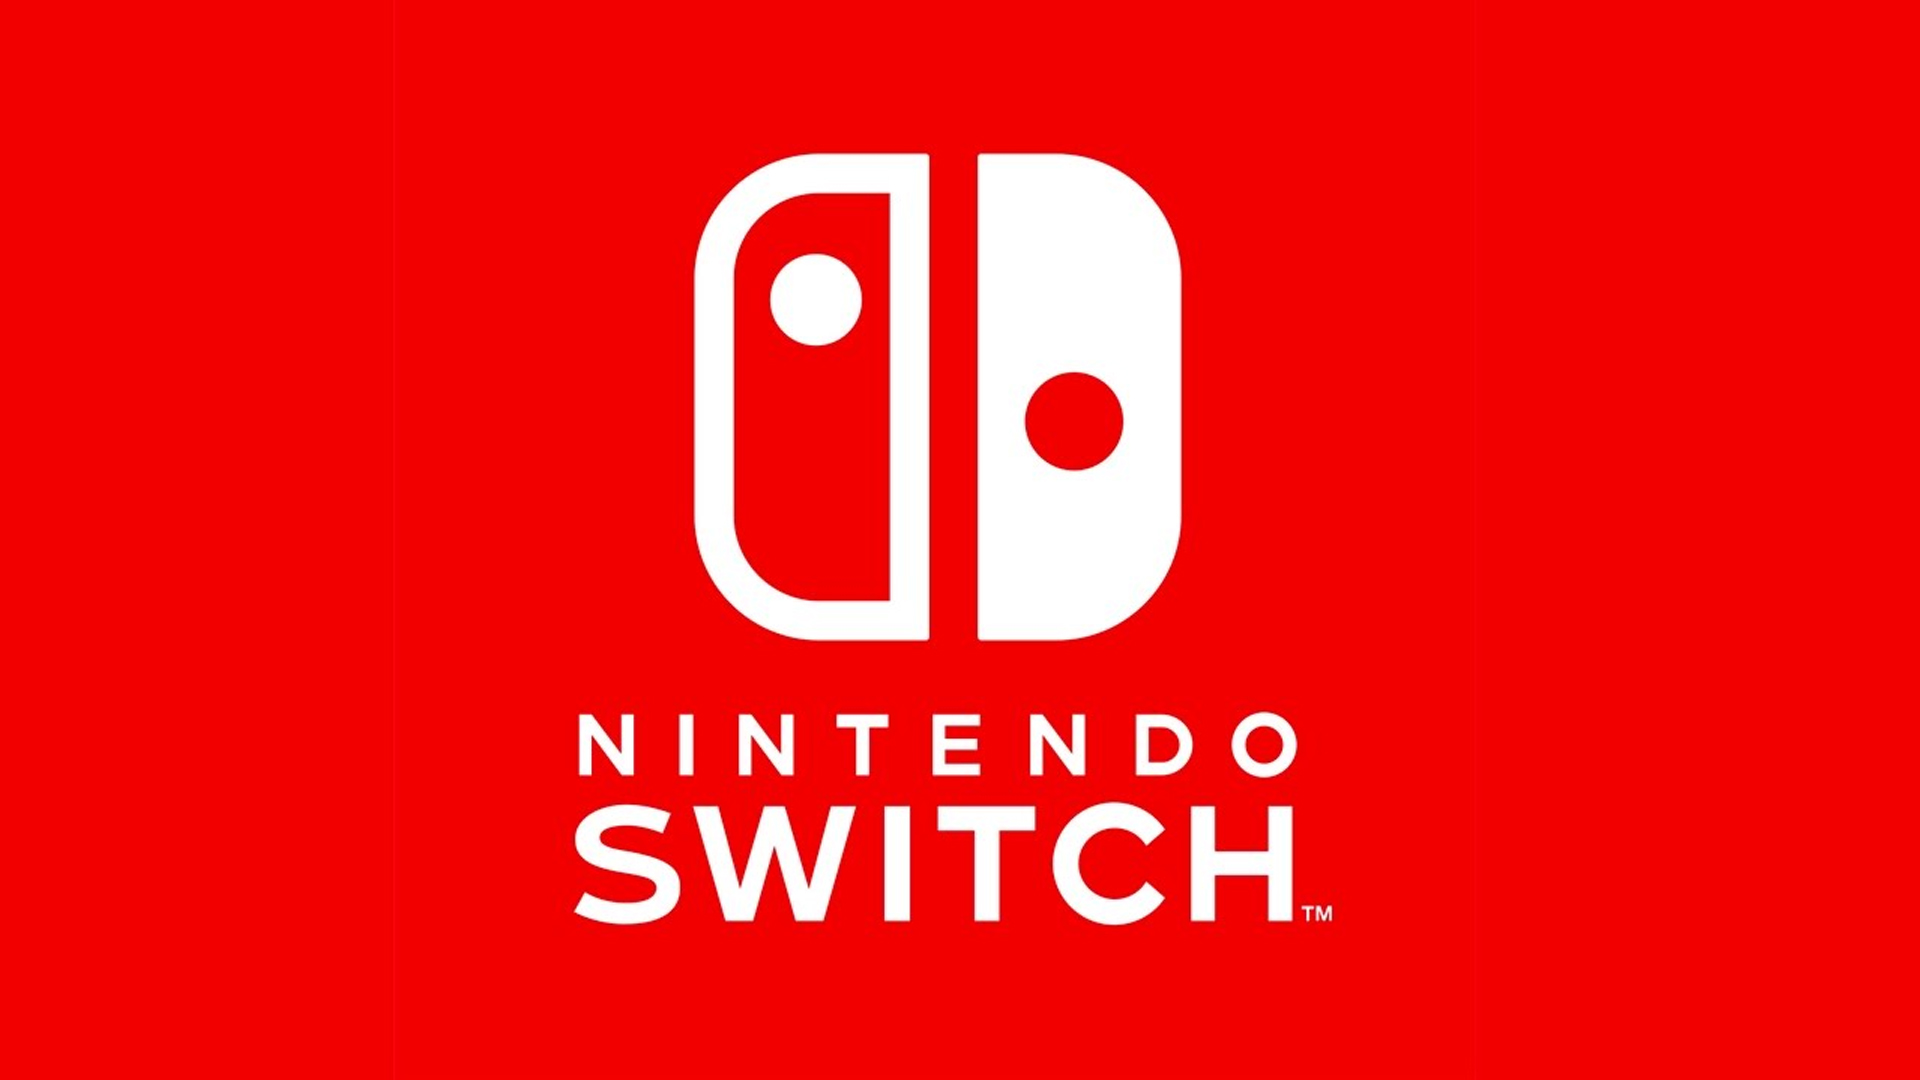 Switch became the fastest console in history, Nintendo